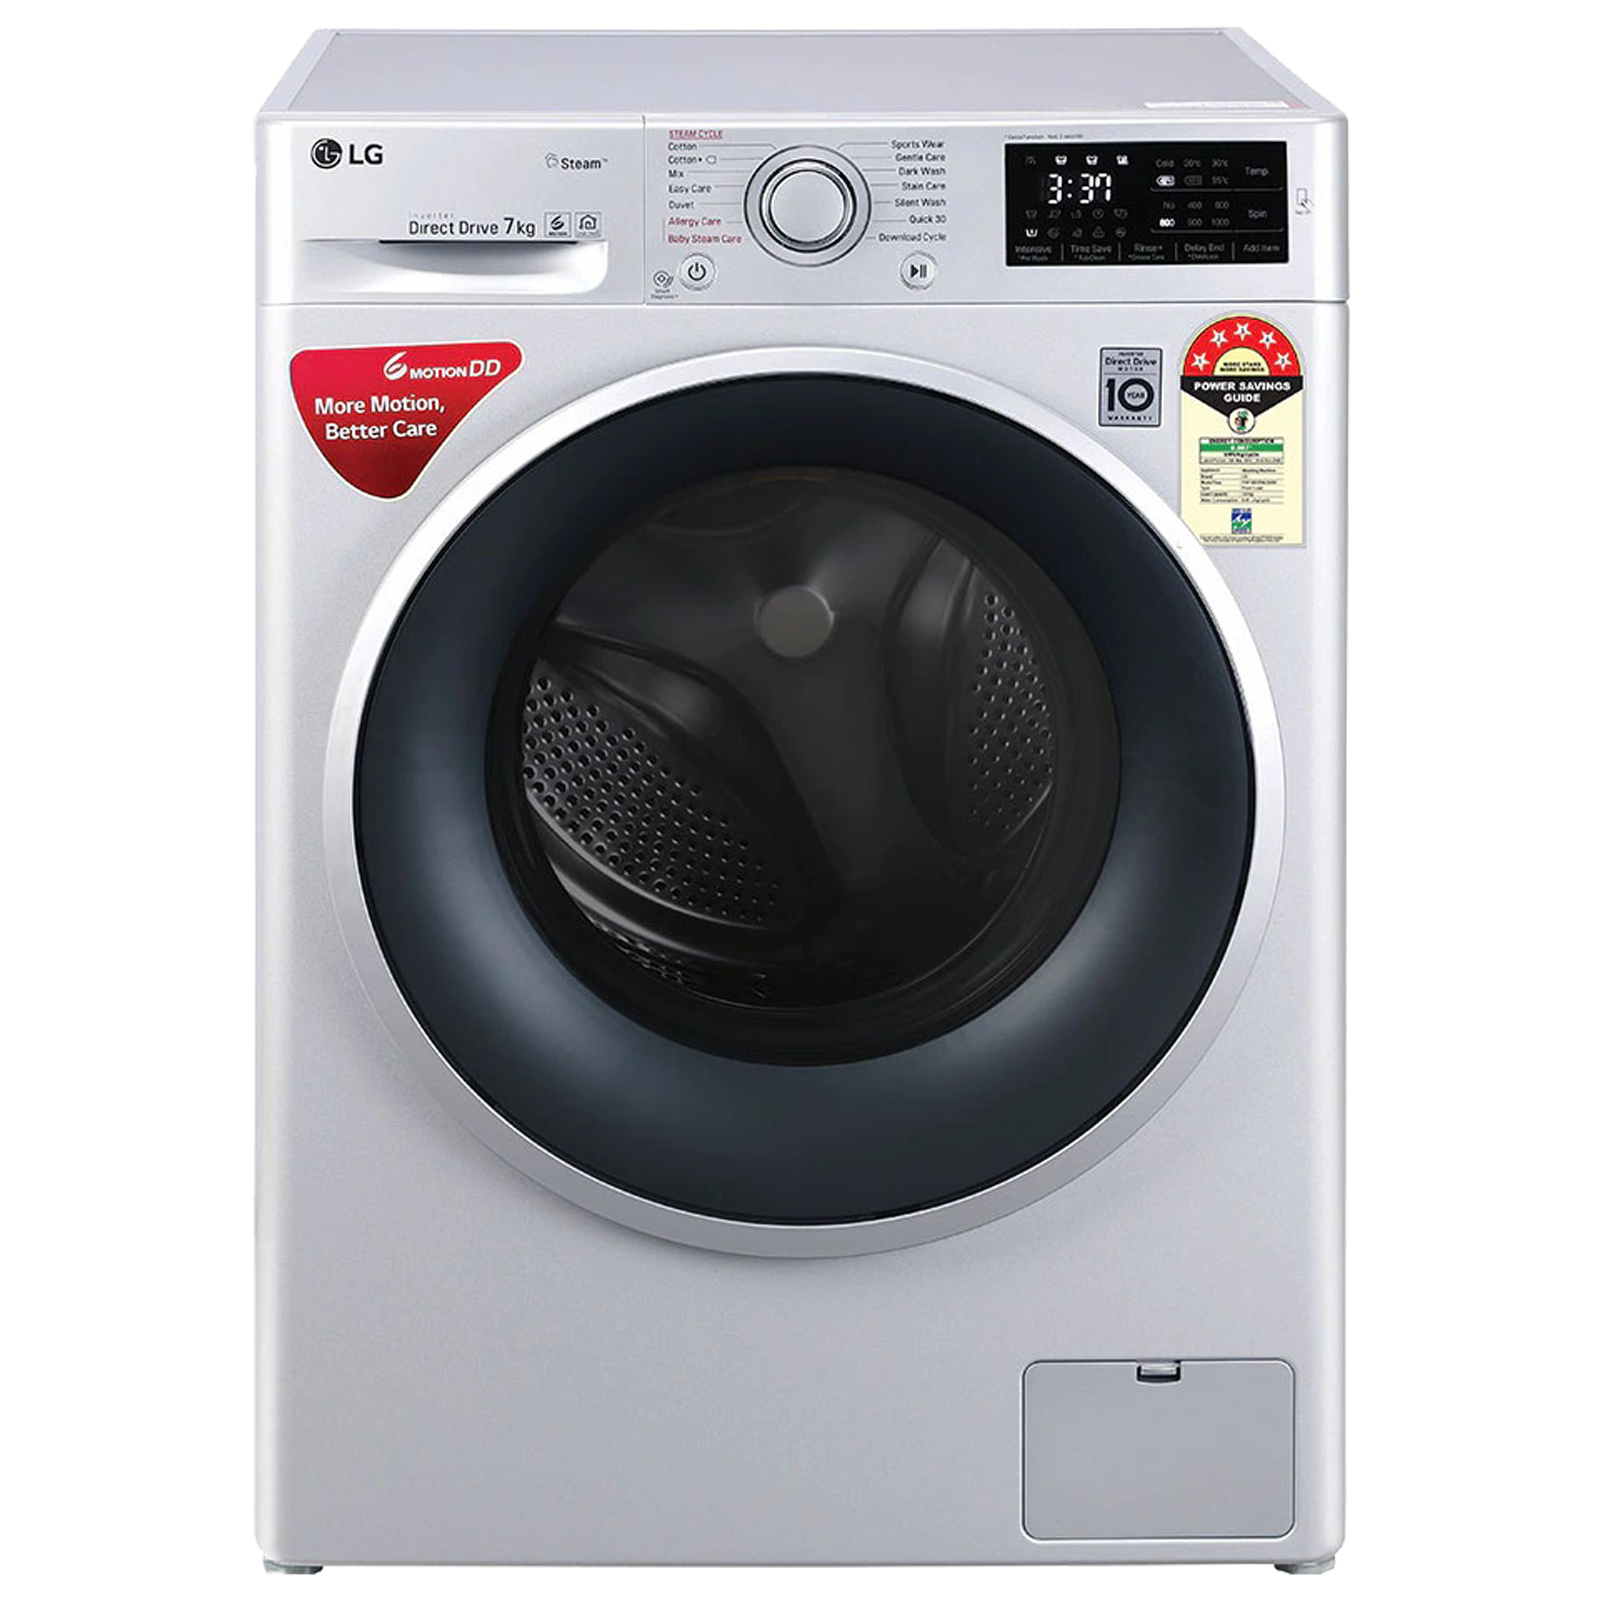 LG 7 kg 5 Star Fully Automatic Front Load Washing Machine (Smart Diagnosis, FHT1207ZNL.ALSQEIL, Silver)_1